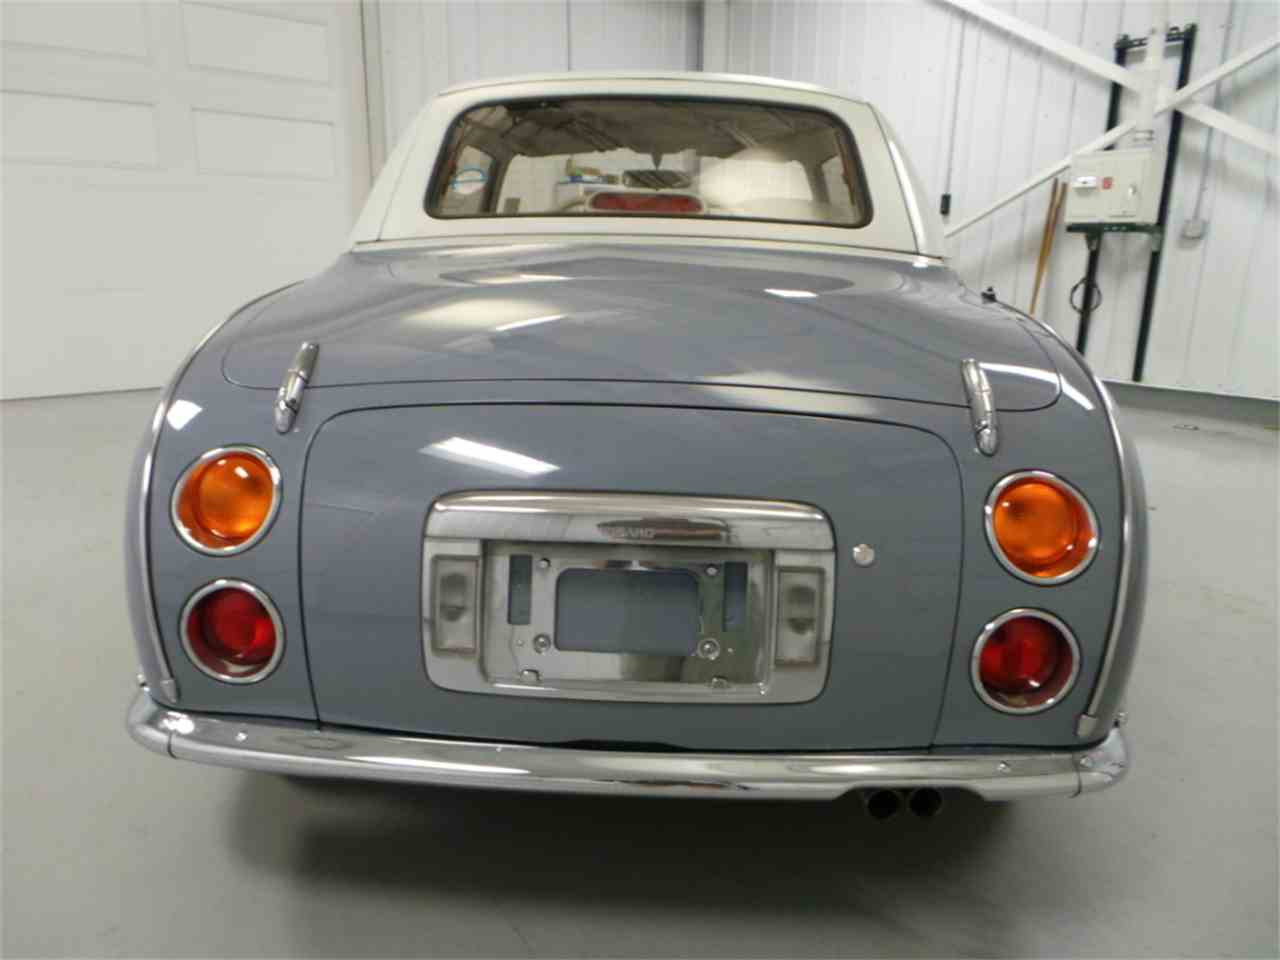 Large Picture of '91 Nissan Figaro - $14,569.00 Offered by Duncan Imports & Classic Cars - JL5M